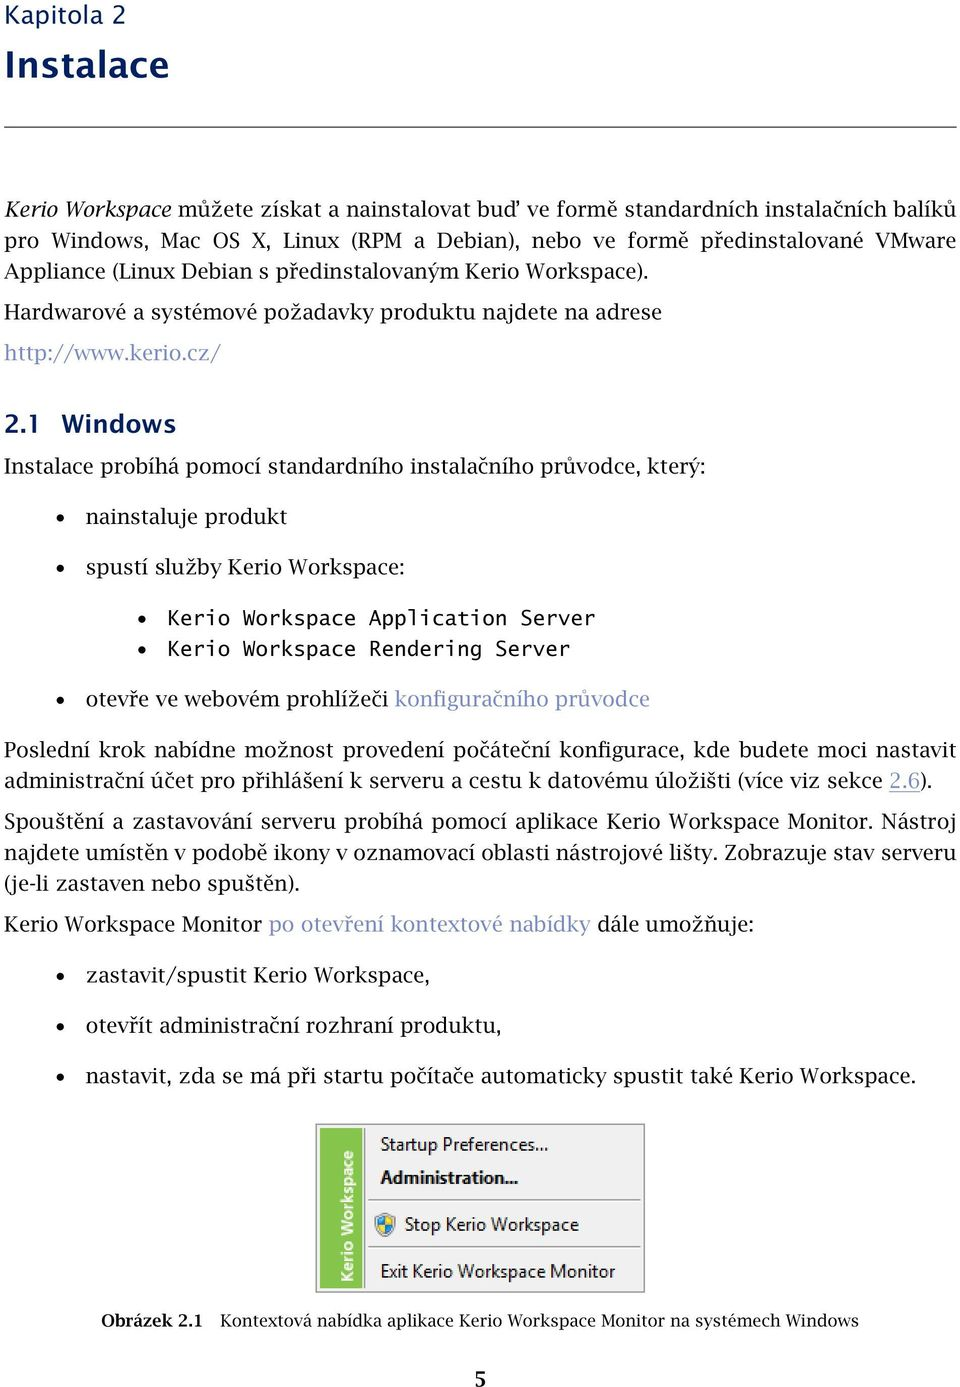 1 Windows Instalace probíhá pomocí standardního instalačního průvodce, který: nainstaluje produkt spustí služby Kerio Workspace: Kerio Workspace Application Server Kerio Workspace Rendering Server